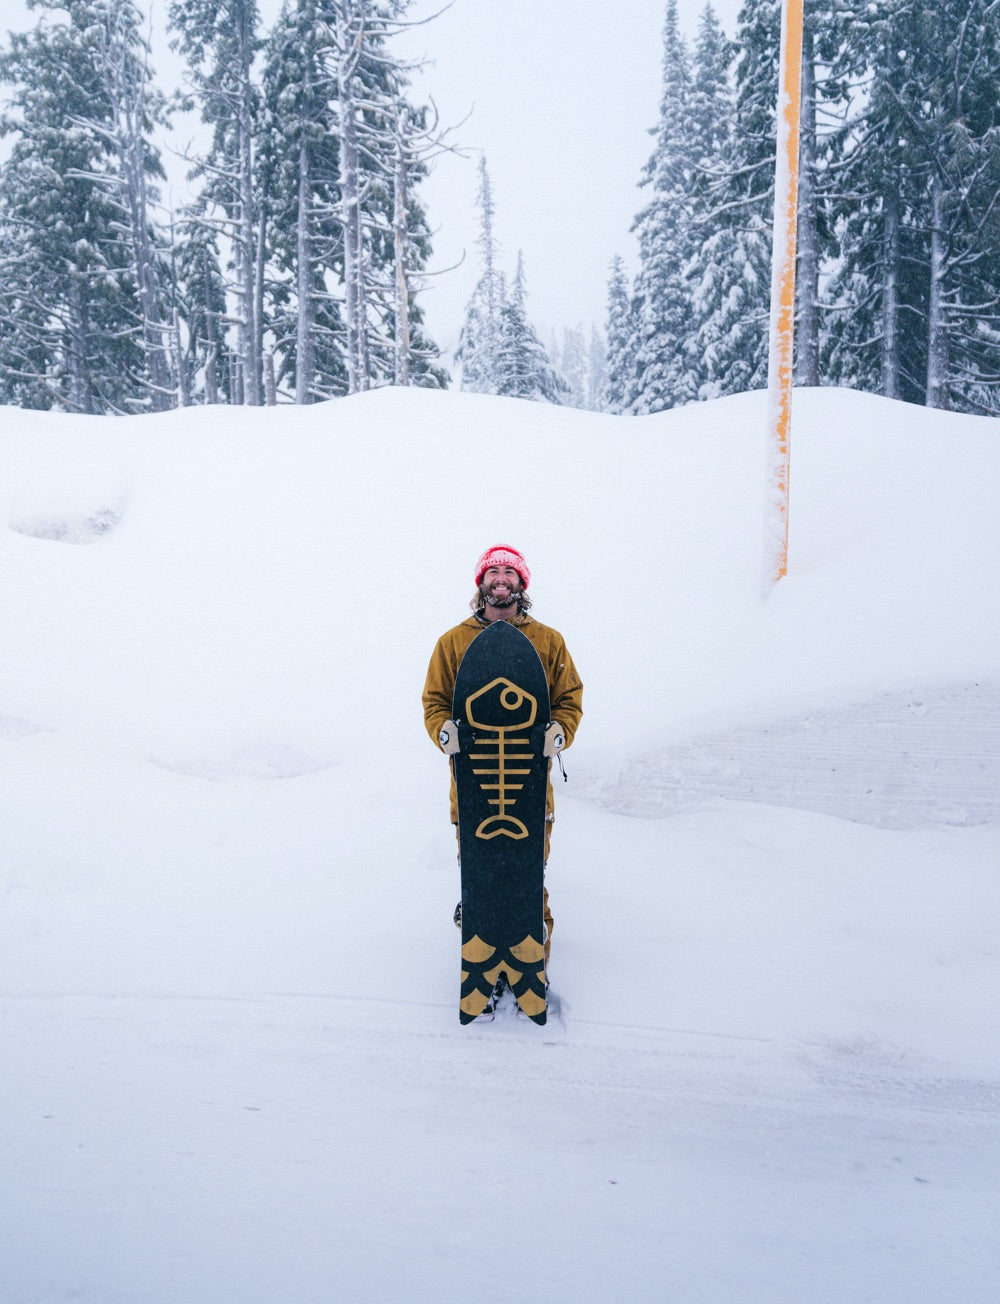 Brandon Haley stands on the side of a road holding his snowboard and a big grin, with a snowy forest scene in the background